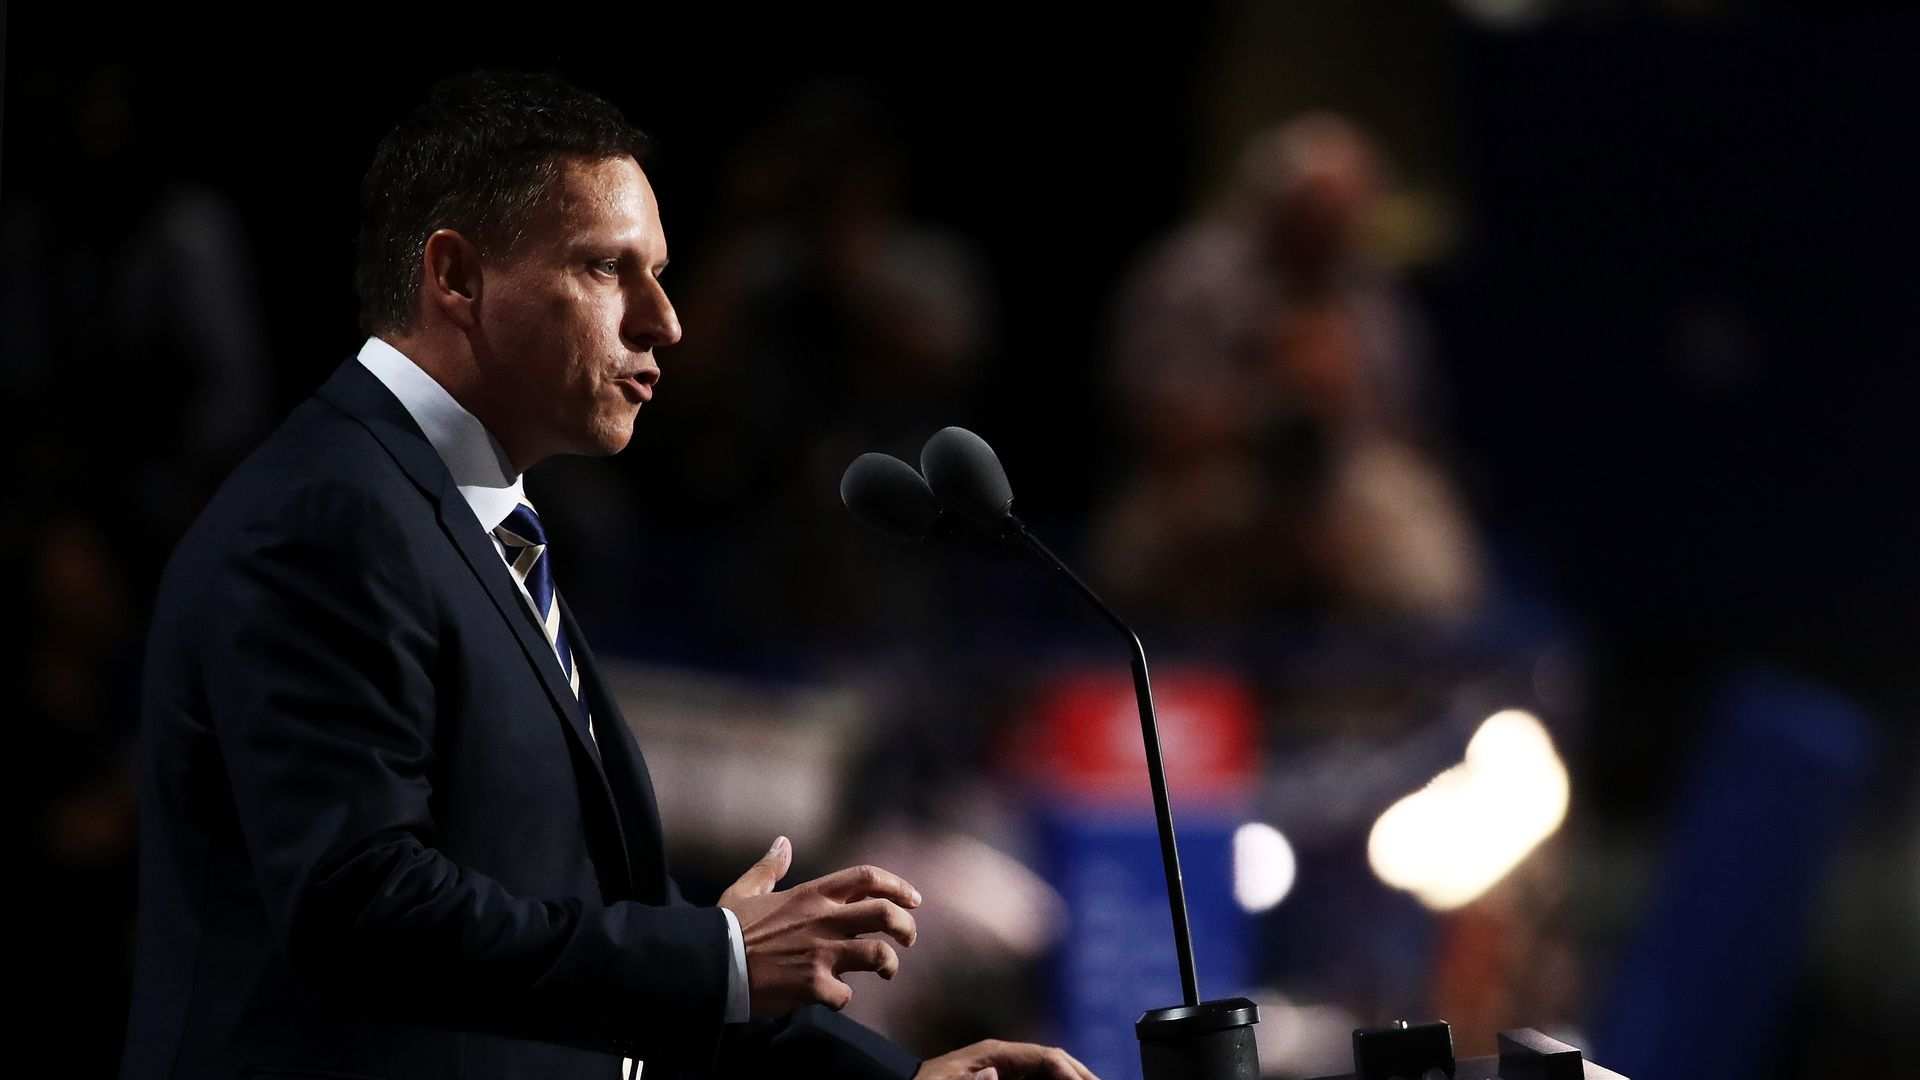 Peter Thiel speaking at the National Republican Convention